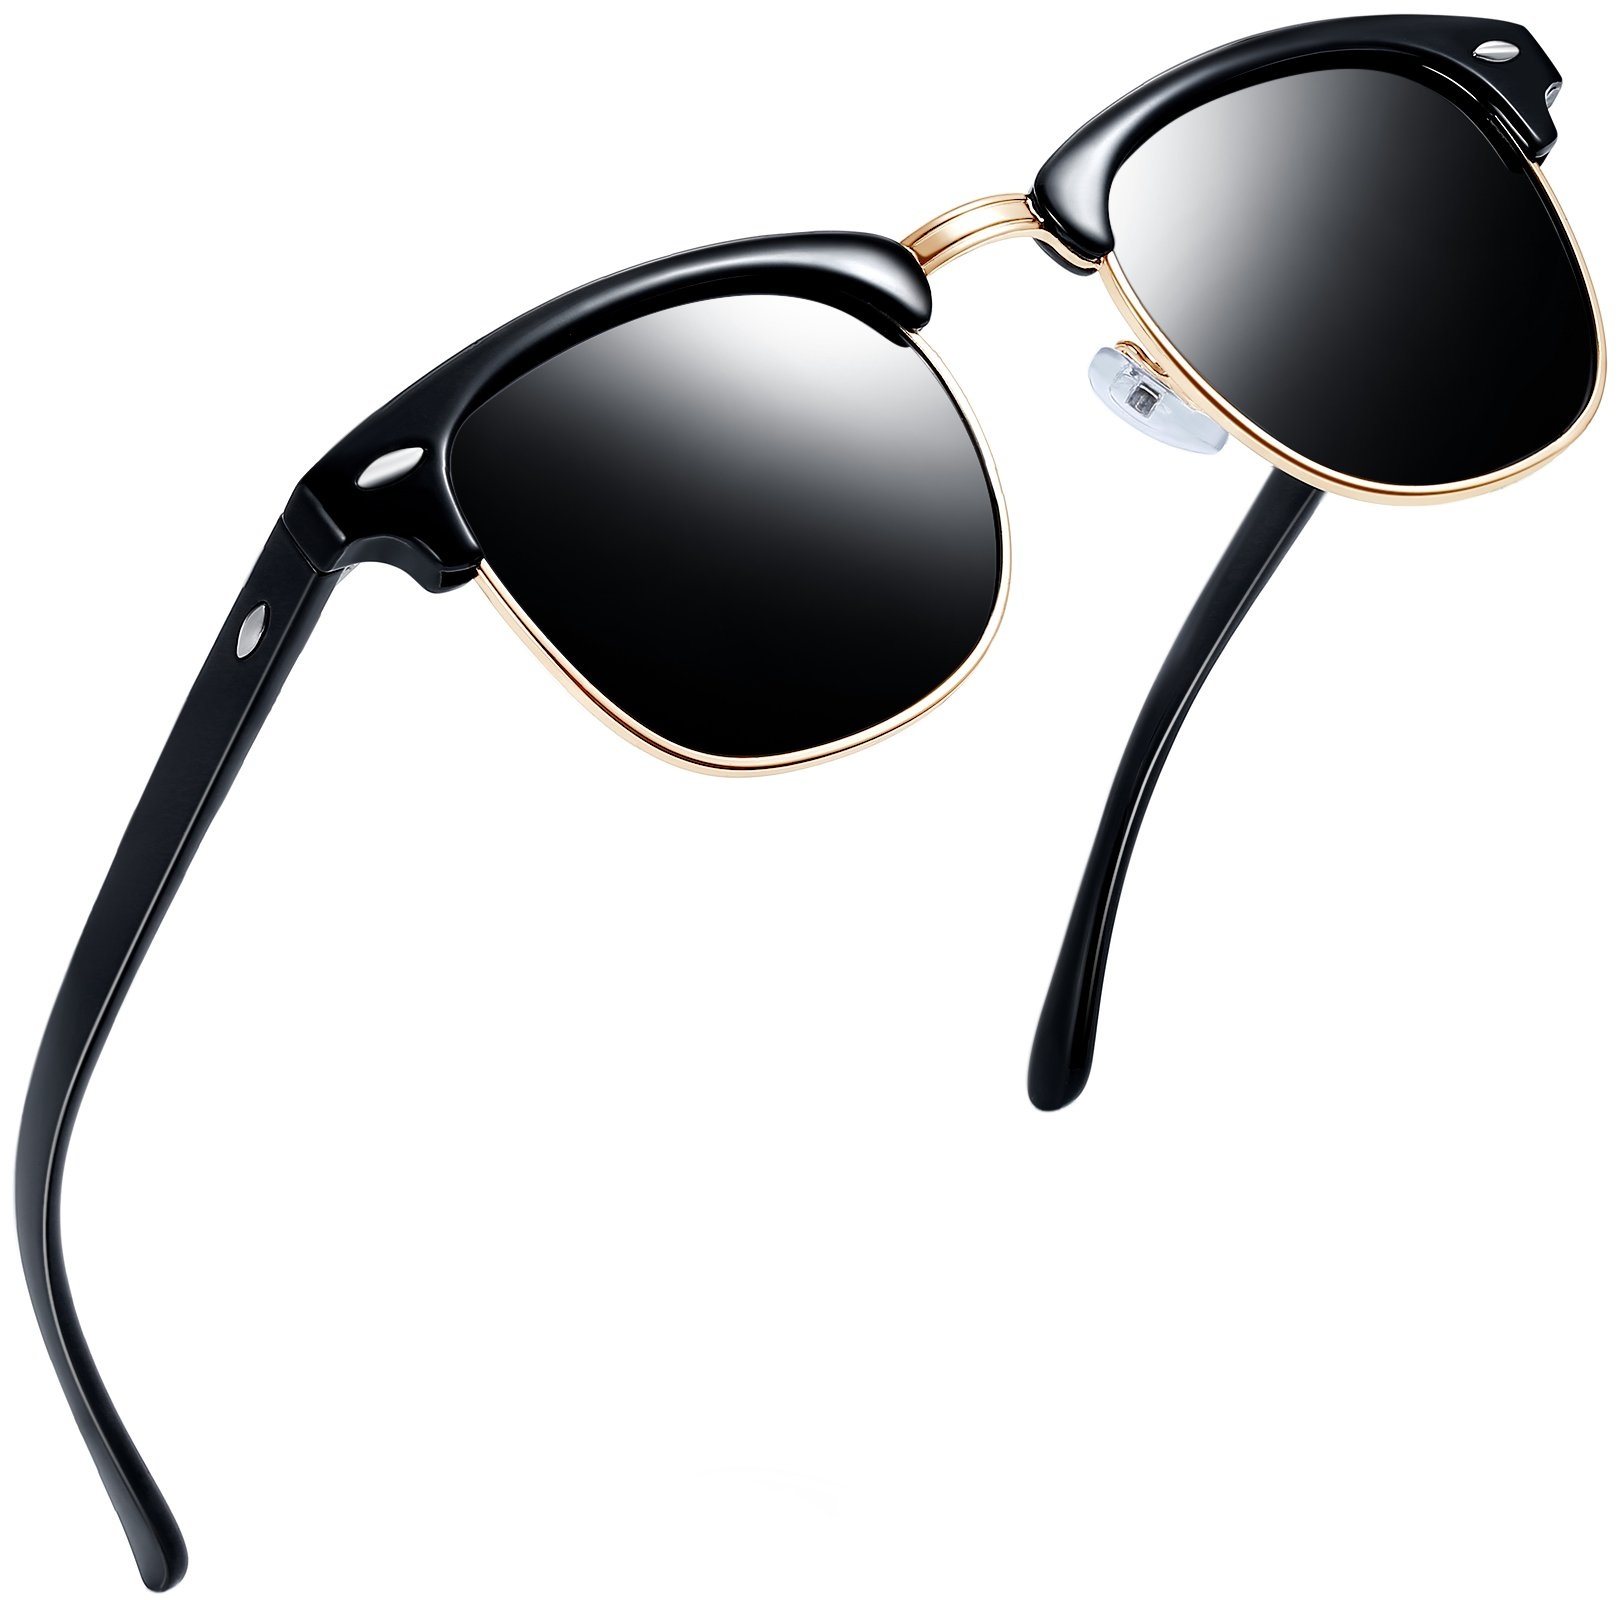 808d50e080 Galleon - Joopin Semi Rimless Polarized Sunglasses Women Men Retro Brand  Sun Glasses (Brilliant Black Frame Grey Lens)